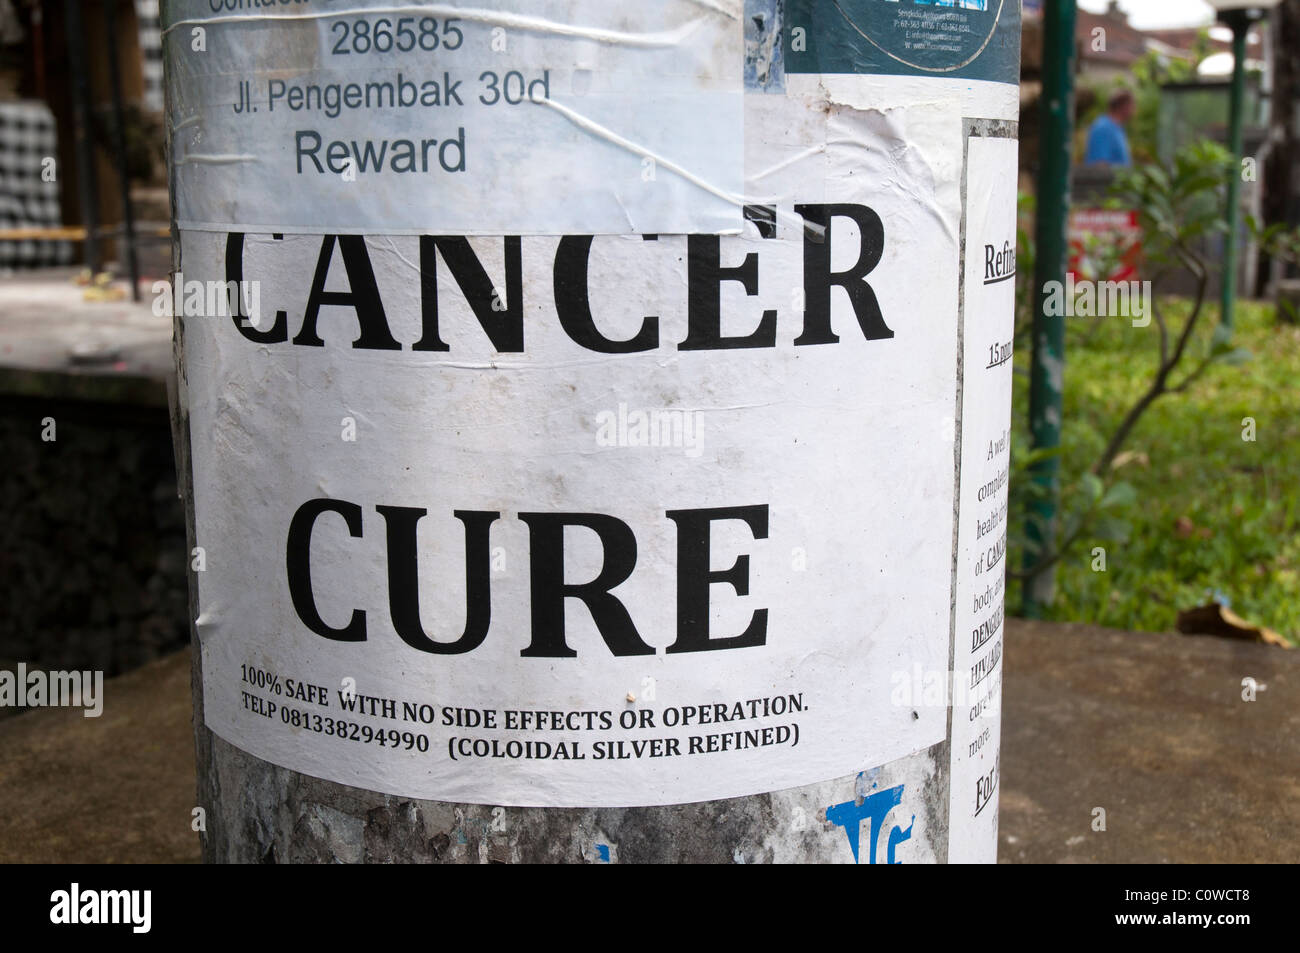 Poster advertising a cancer cure in Bali, Indonesia - Stock Image